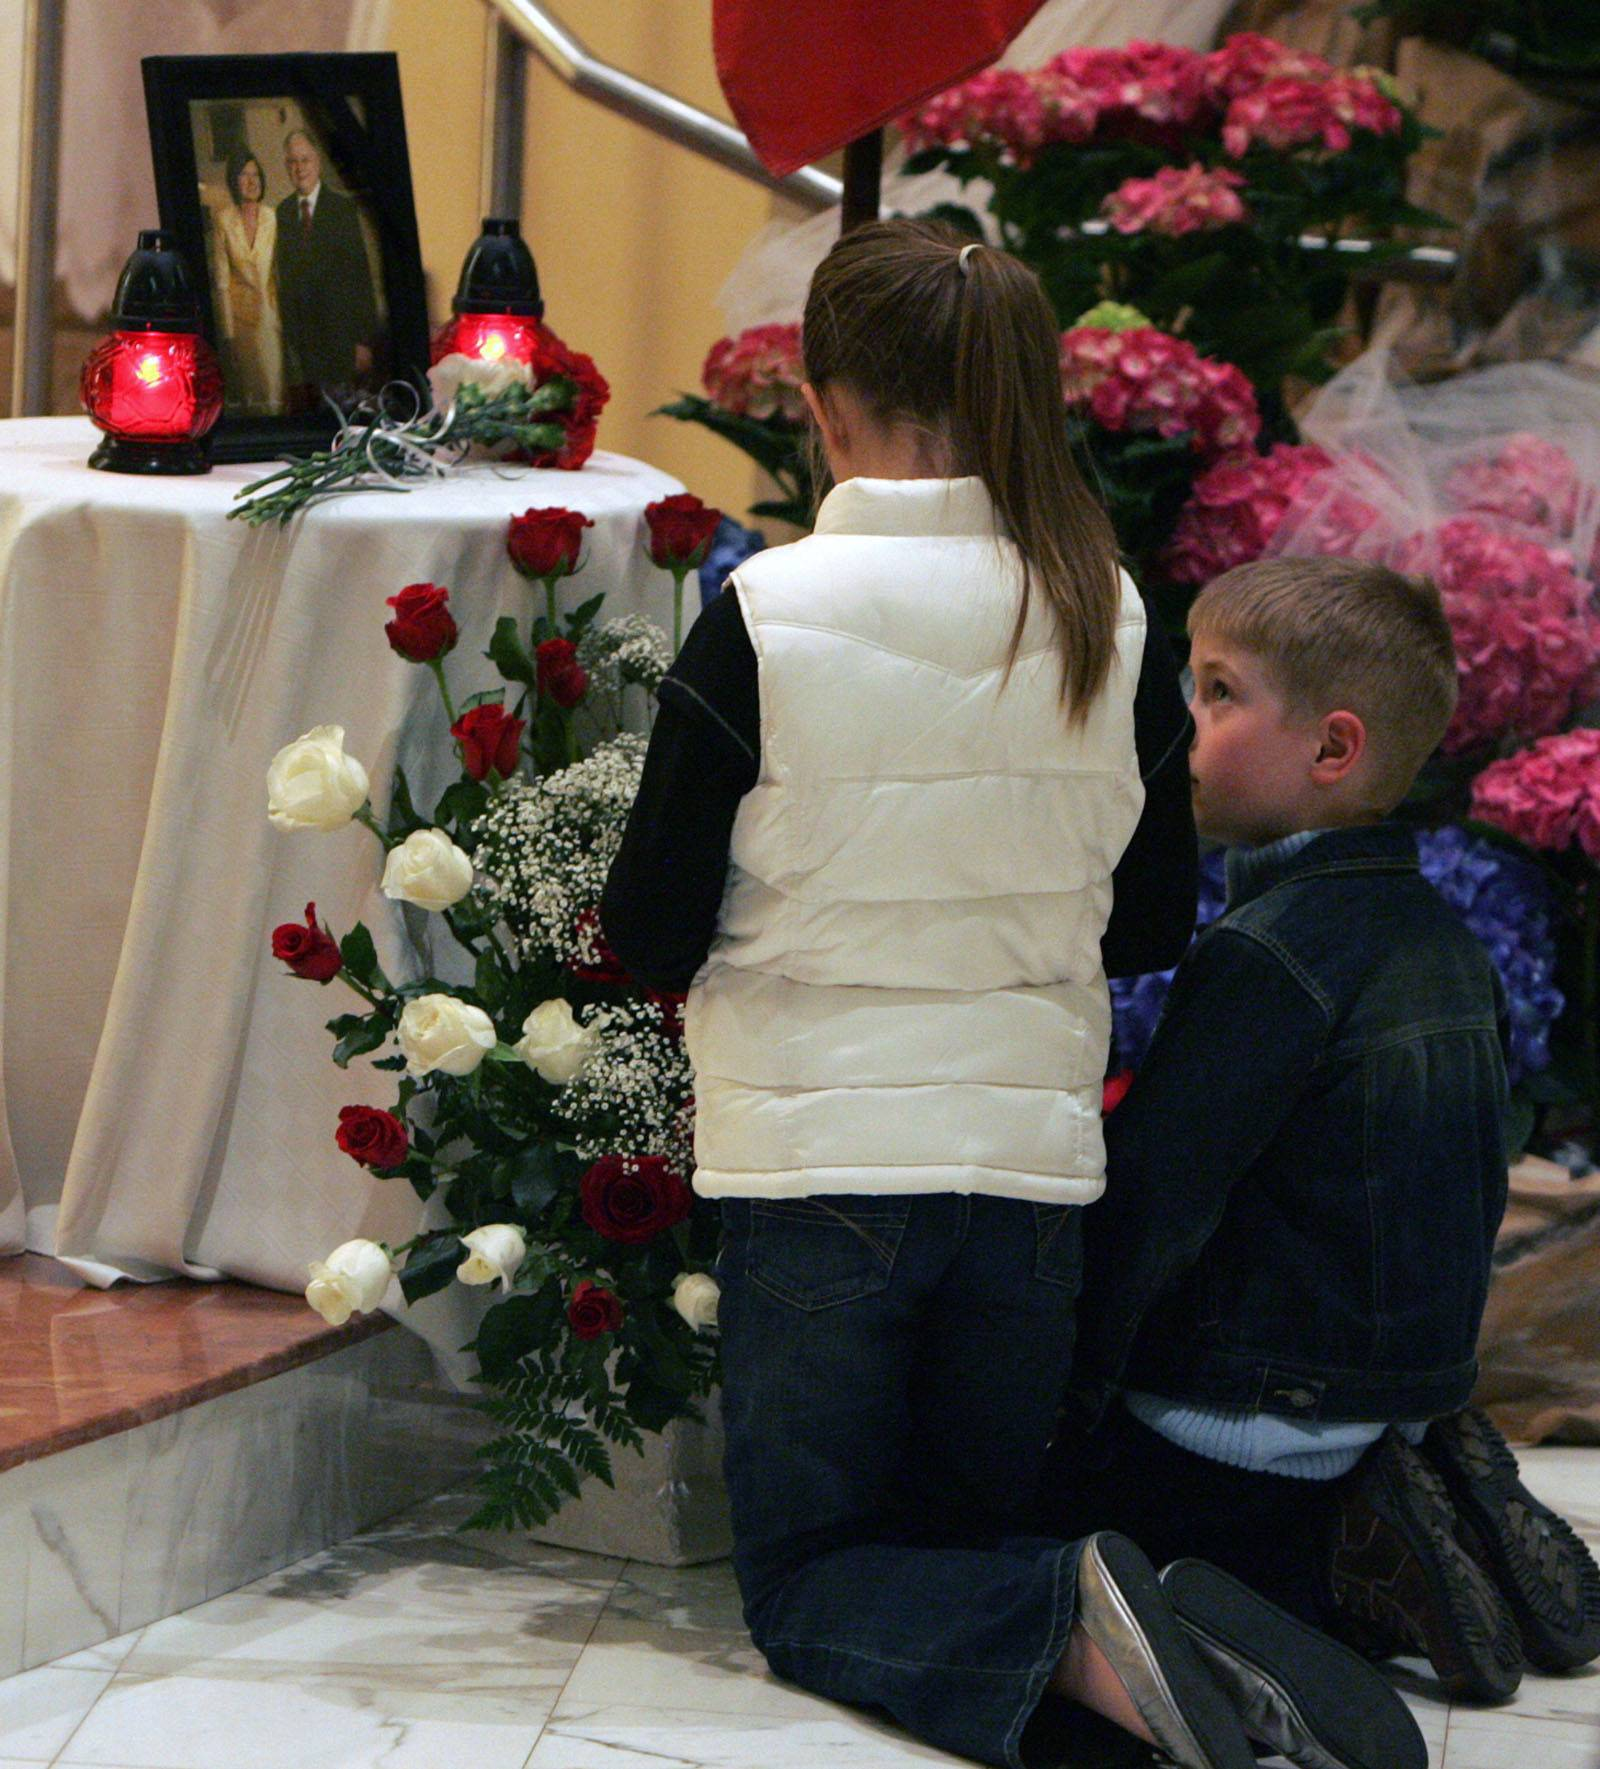 Victoria Szczudrawa, 10, and her bother Jacob, 6, pray at a photograph of Polish President Lech Kaczynski and his wife during a memorial Mass at Divine Mercy Polish Mission in Lombard on Saturday.